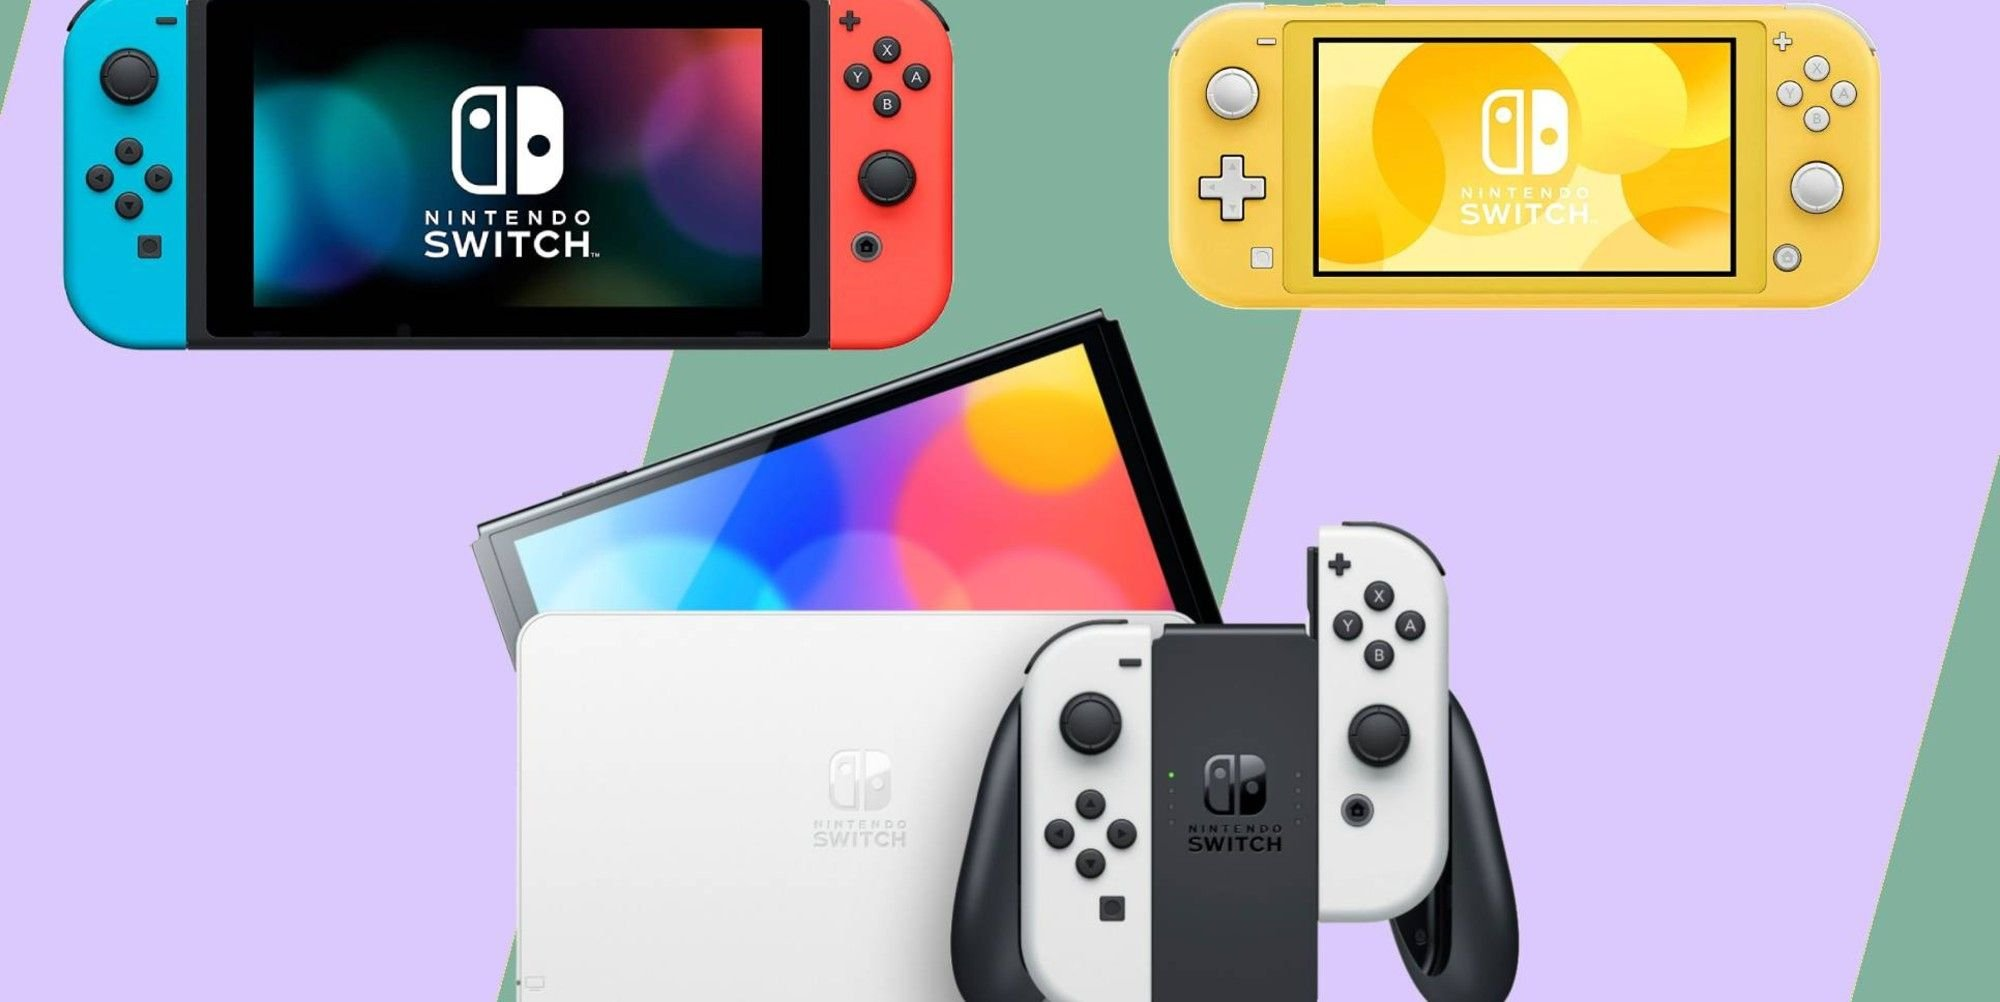 Nintendo Switch Could Be Best-Selling Console By 2025